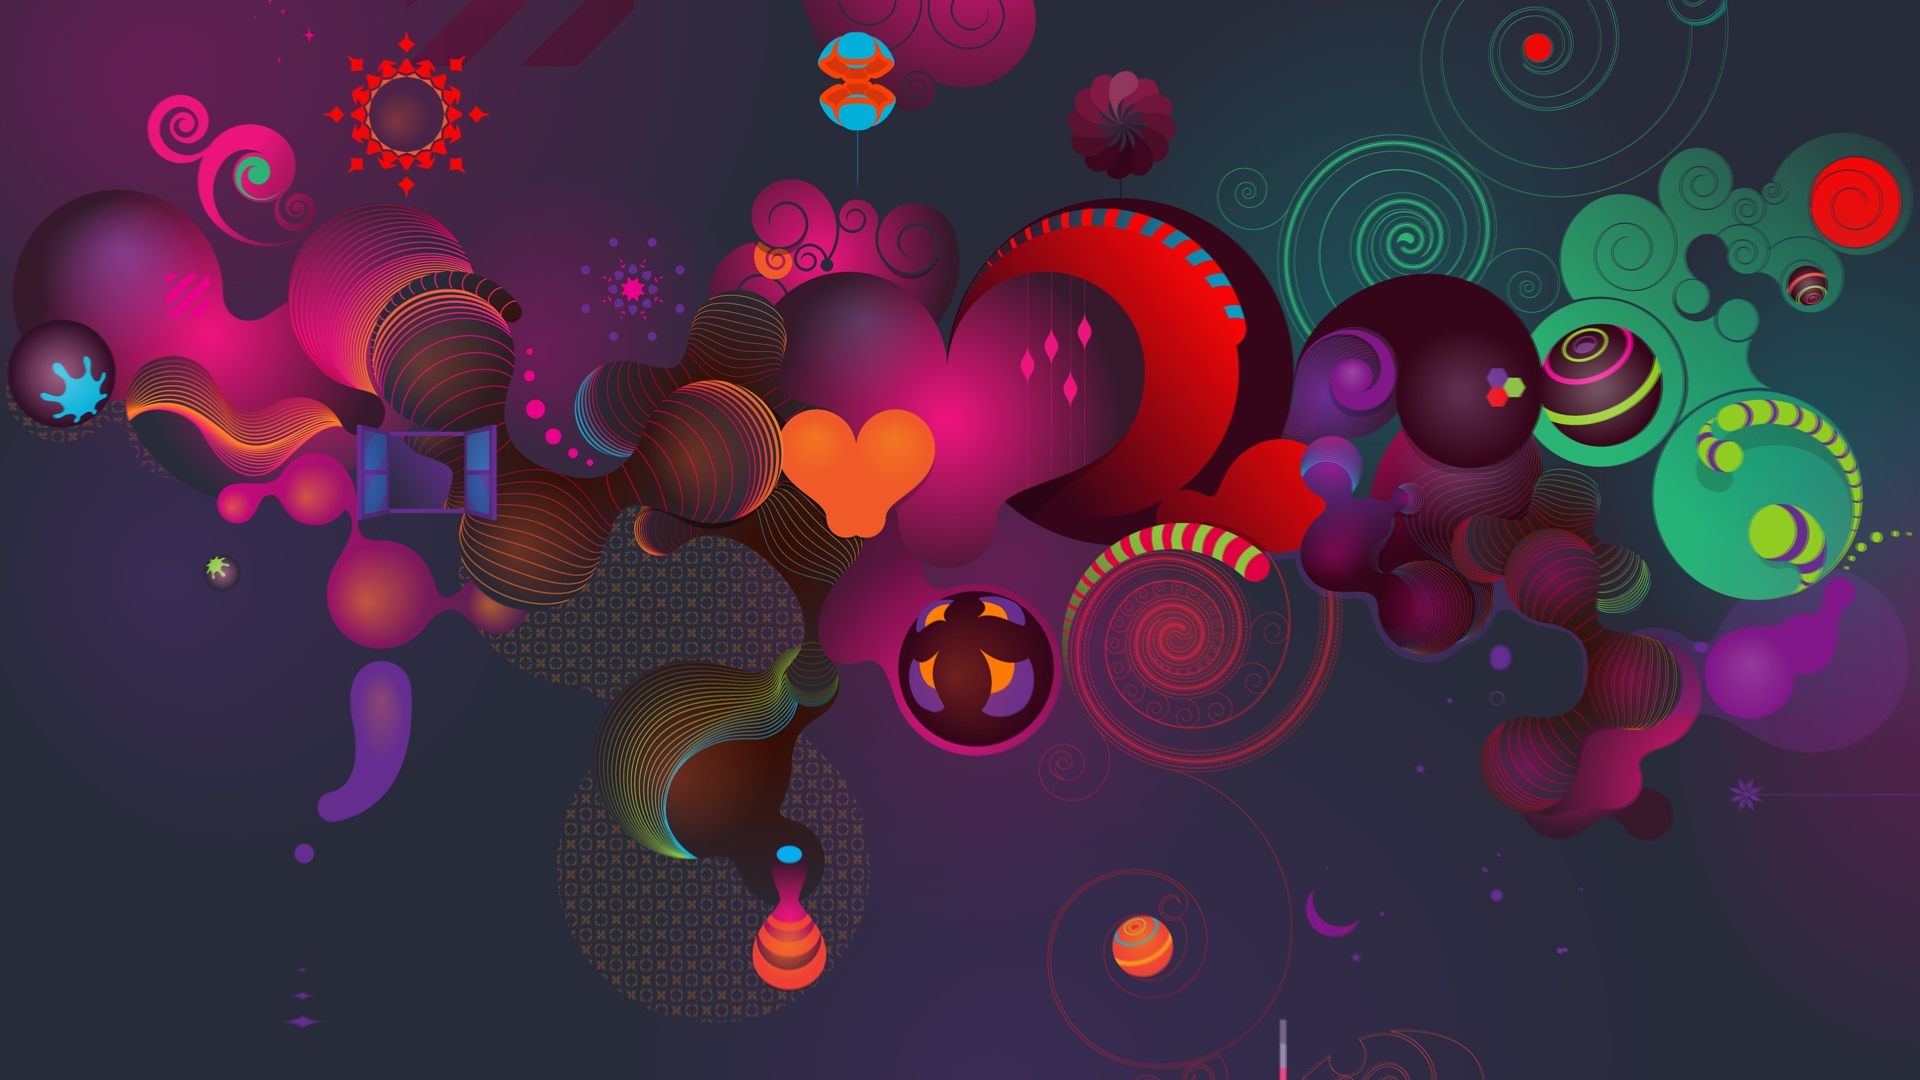 Abstract Cartoon Wallpaper